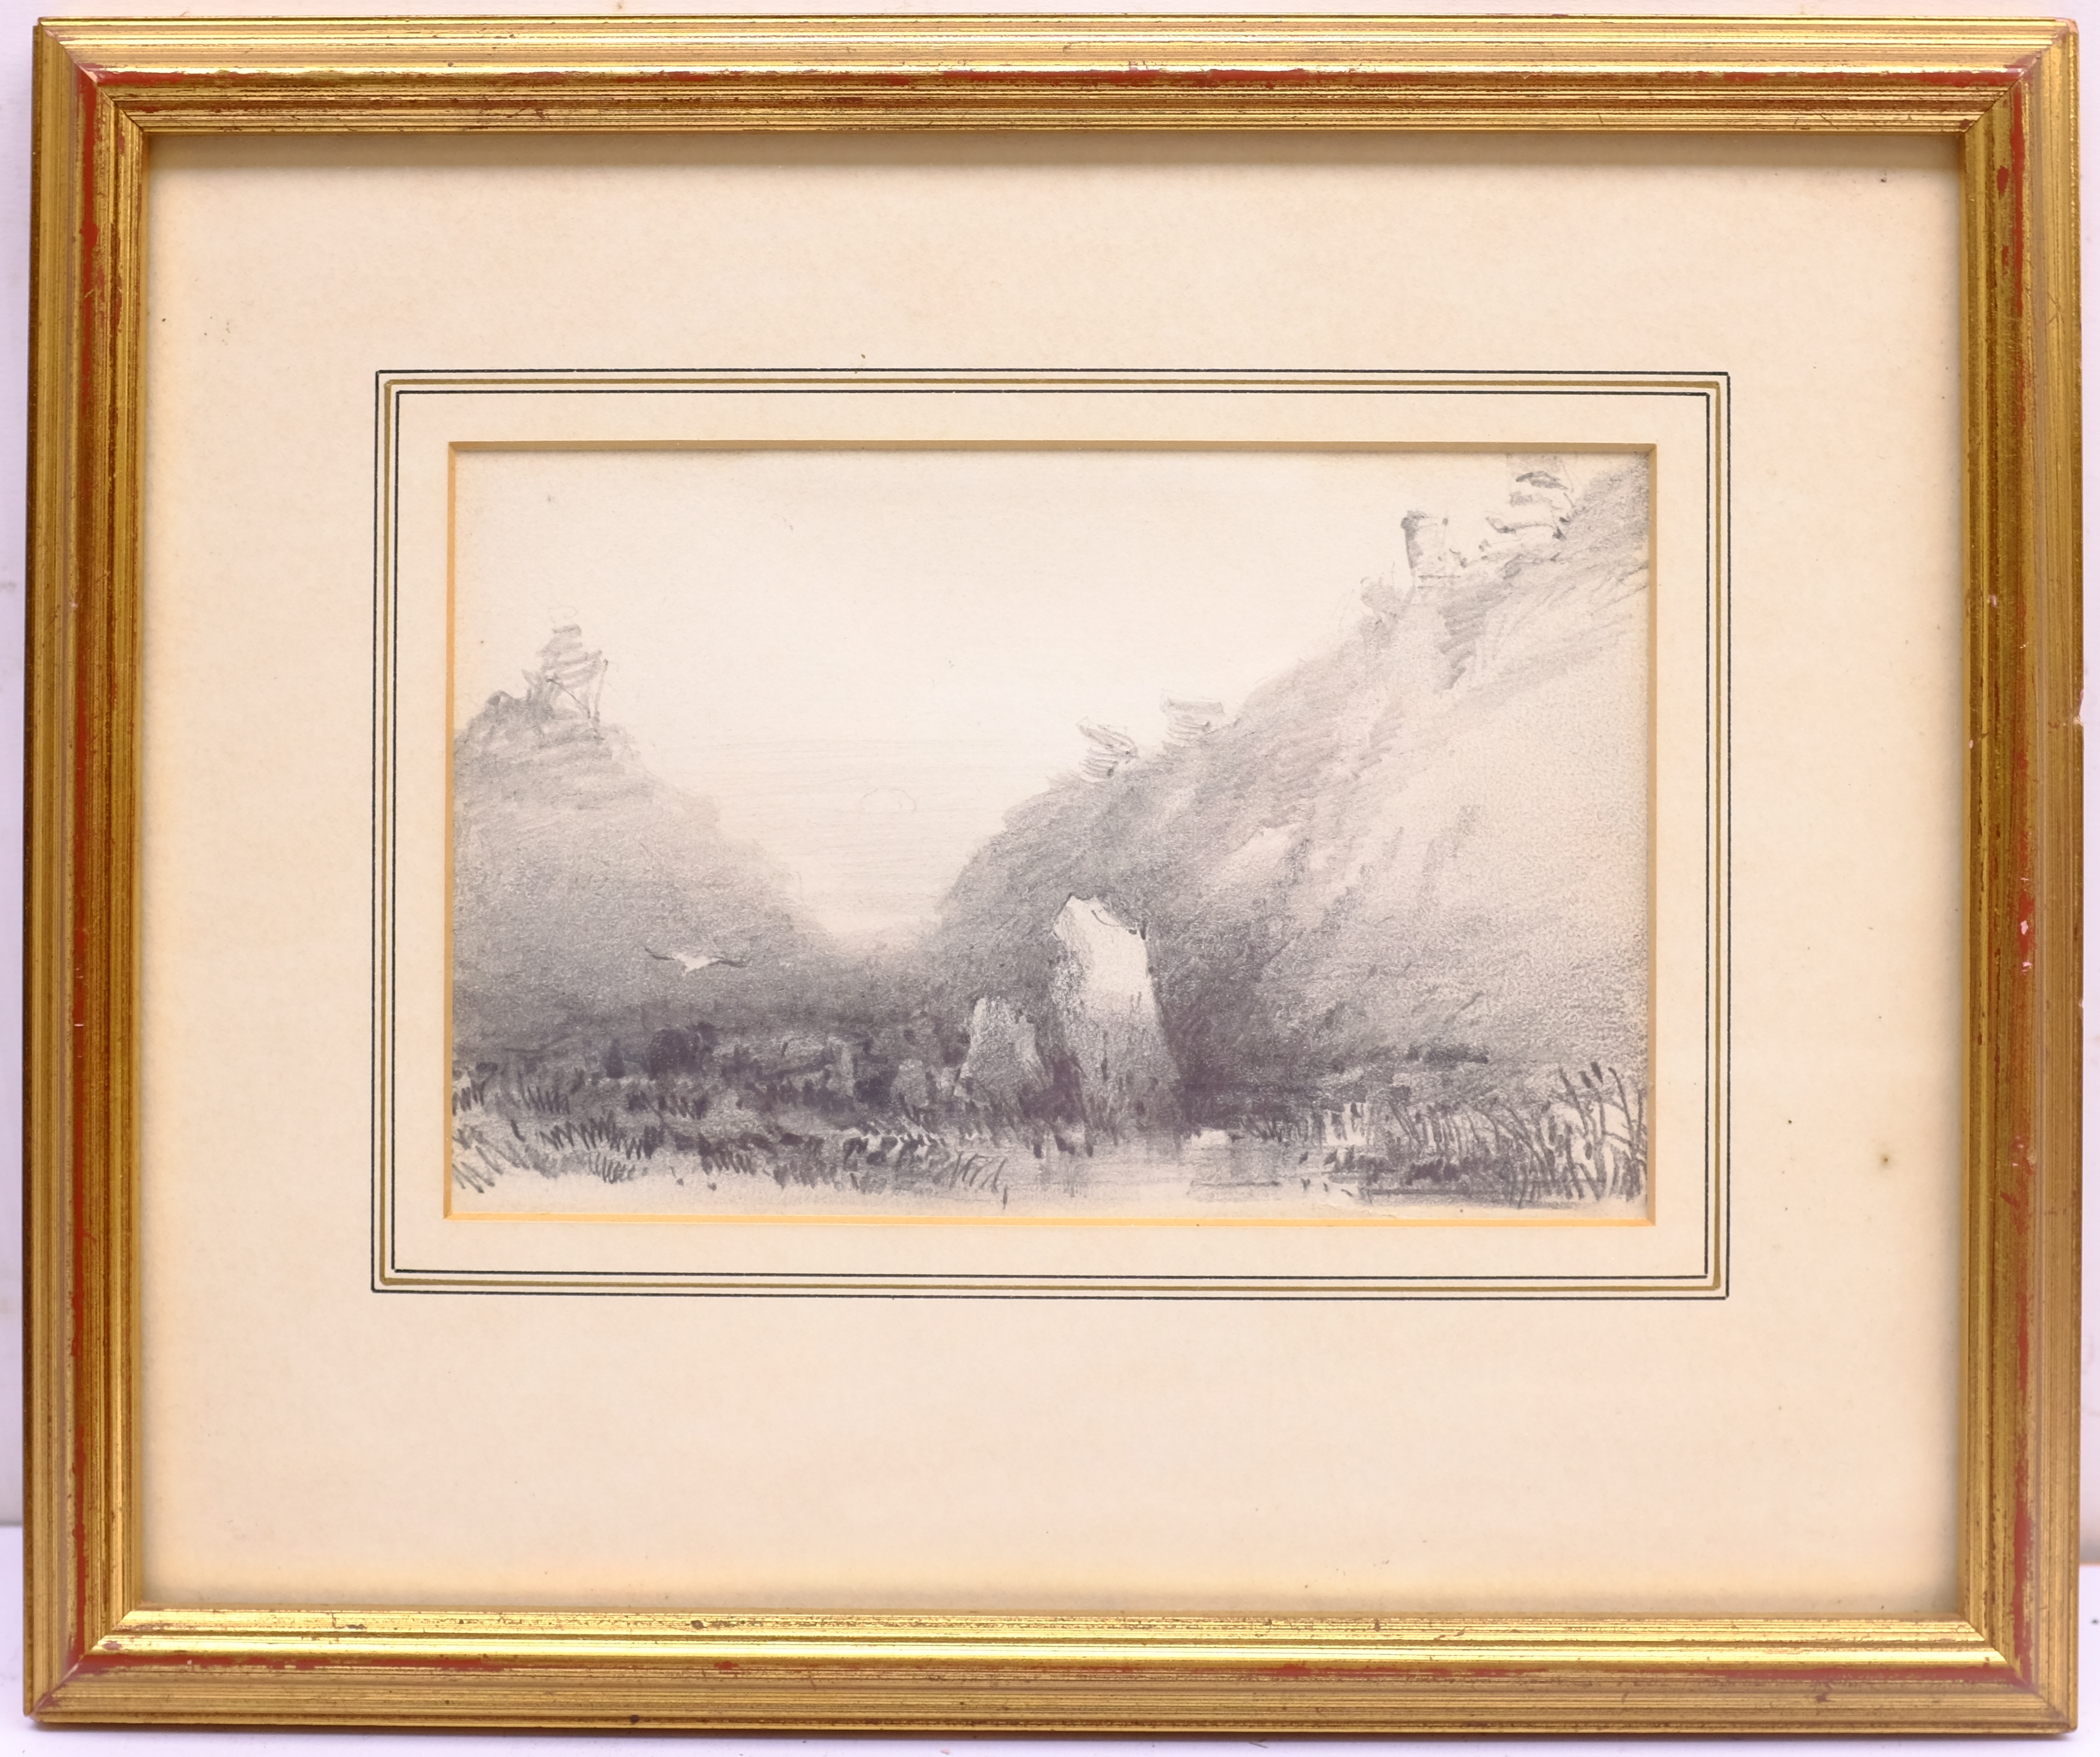 Henry Barlow Carter (British 1804-1868): 'Valley of the Rocks Lynton Twilight', pencil unsigned, tit - Image 4 of 4